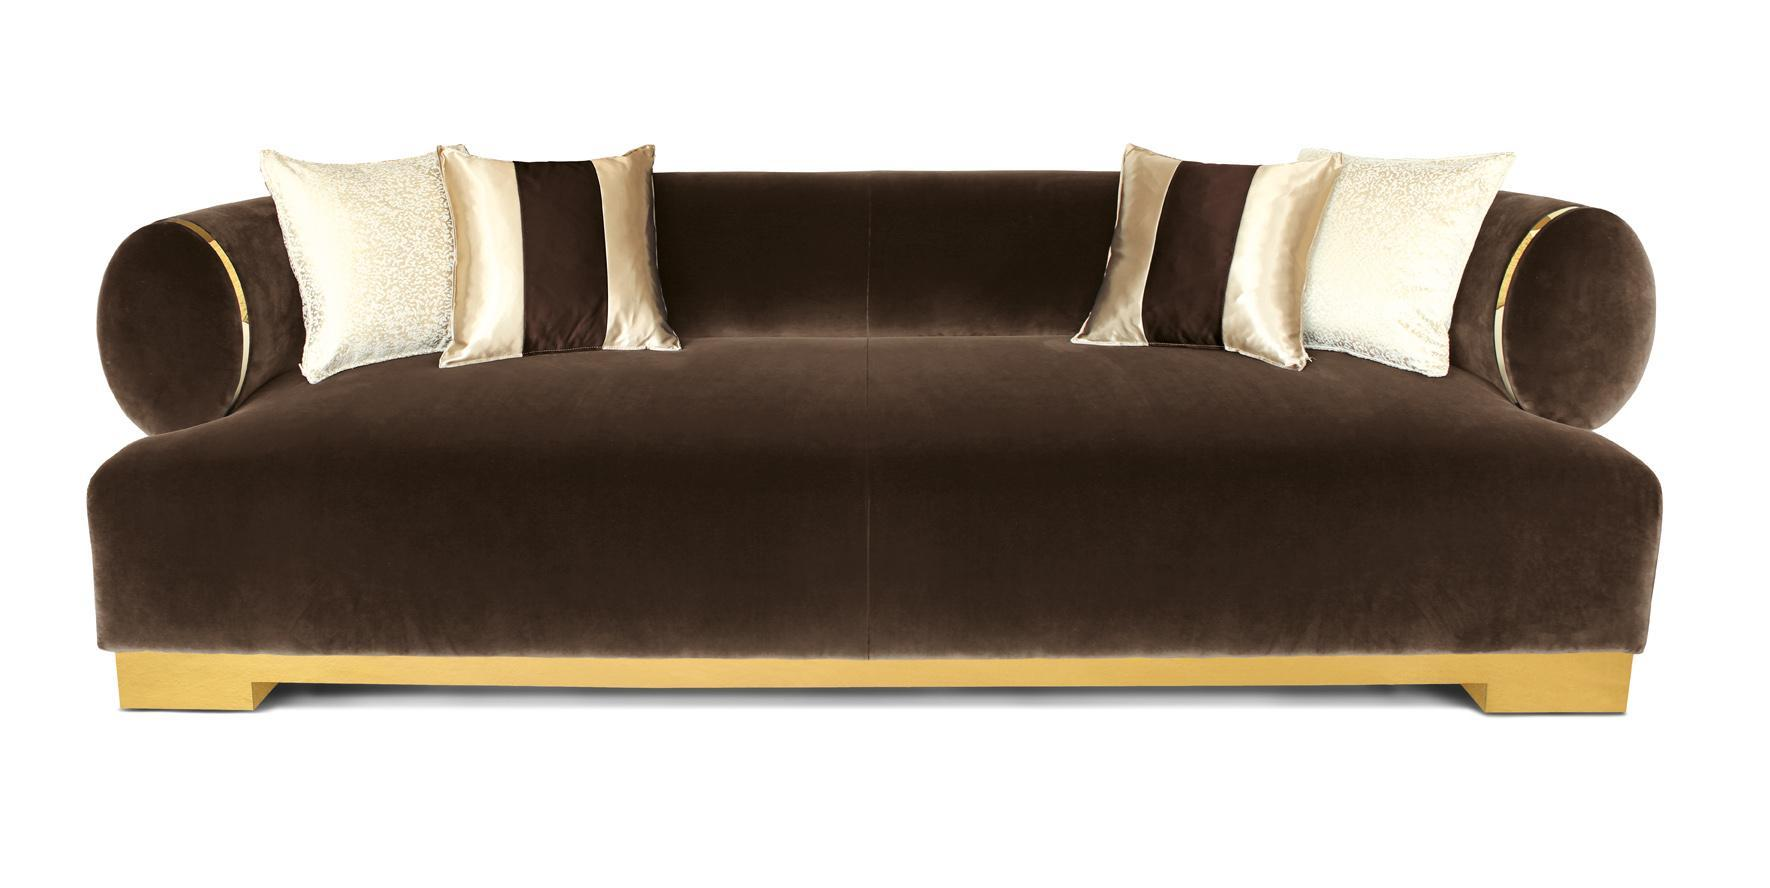 upholstered couch italy top design dorado